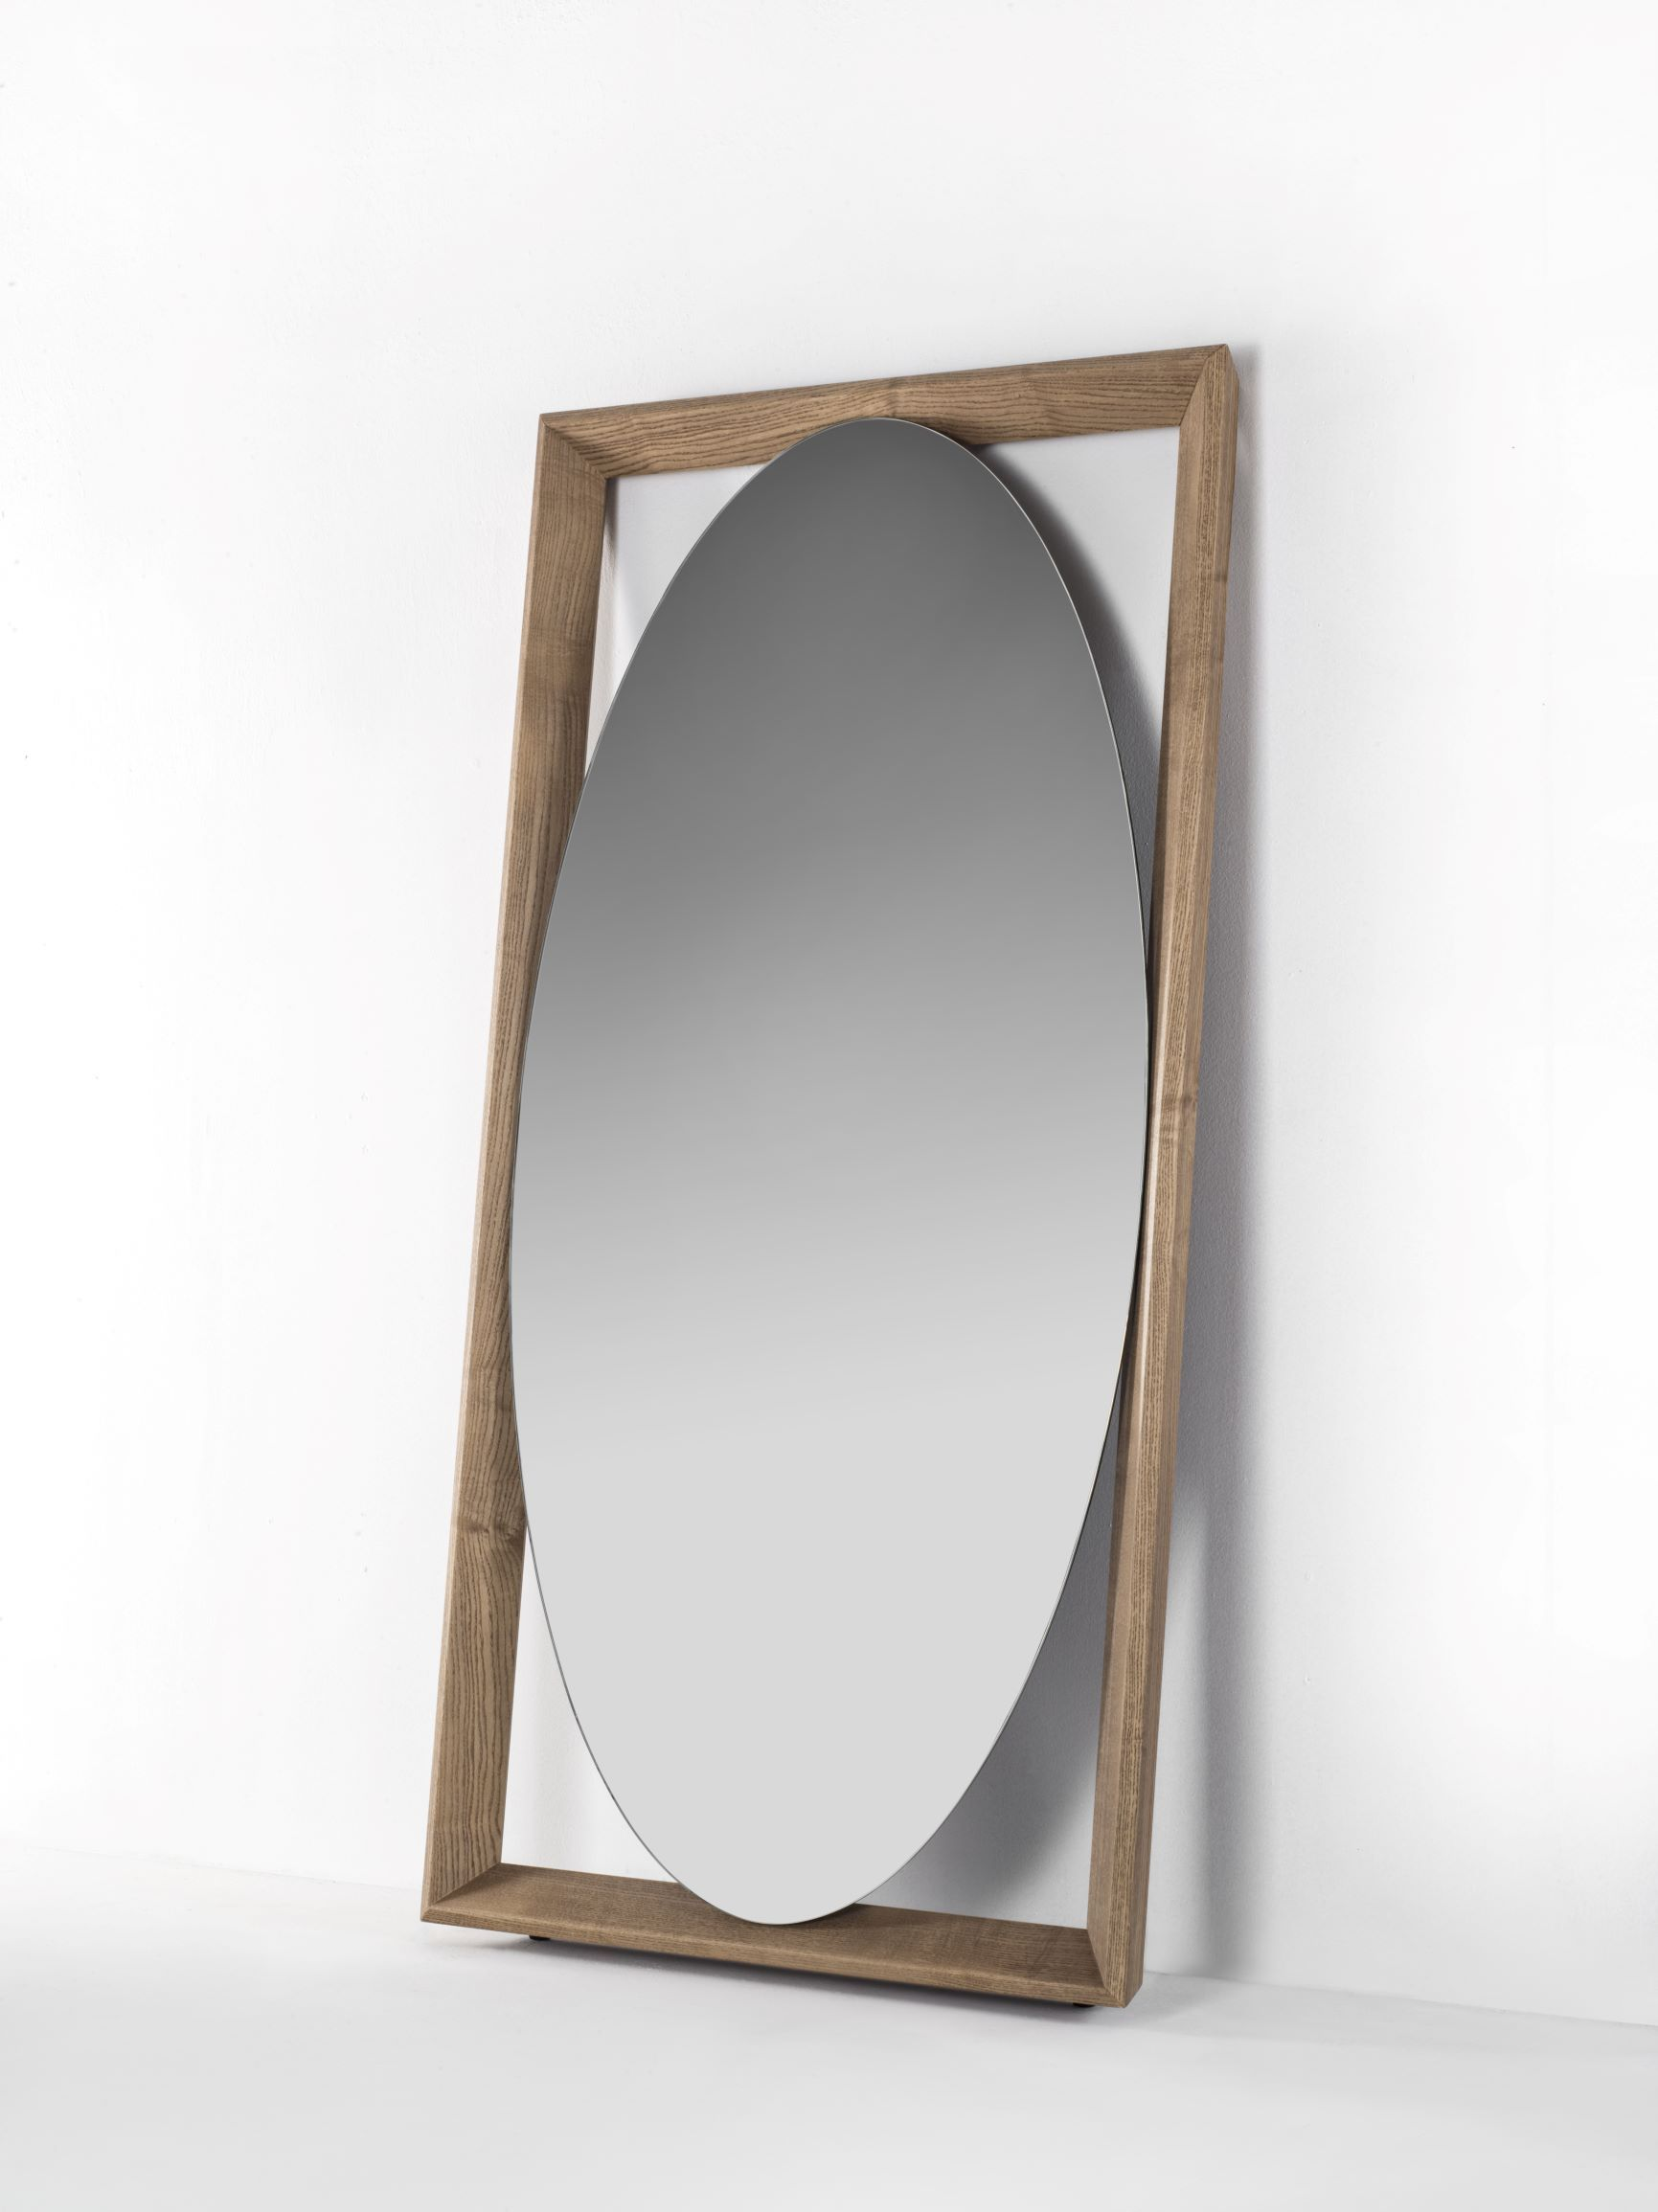 Odino Mirror By Porada Standing Full Length Mirror In Solid Ash